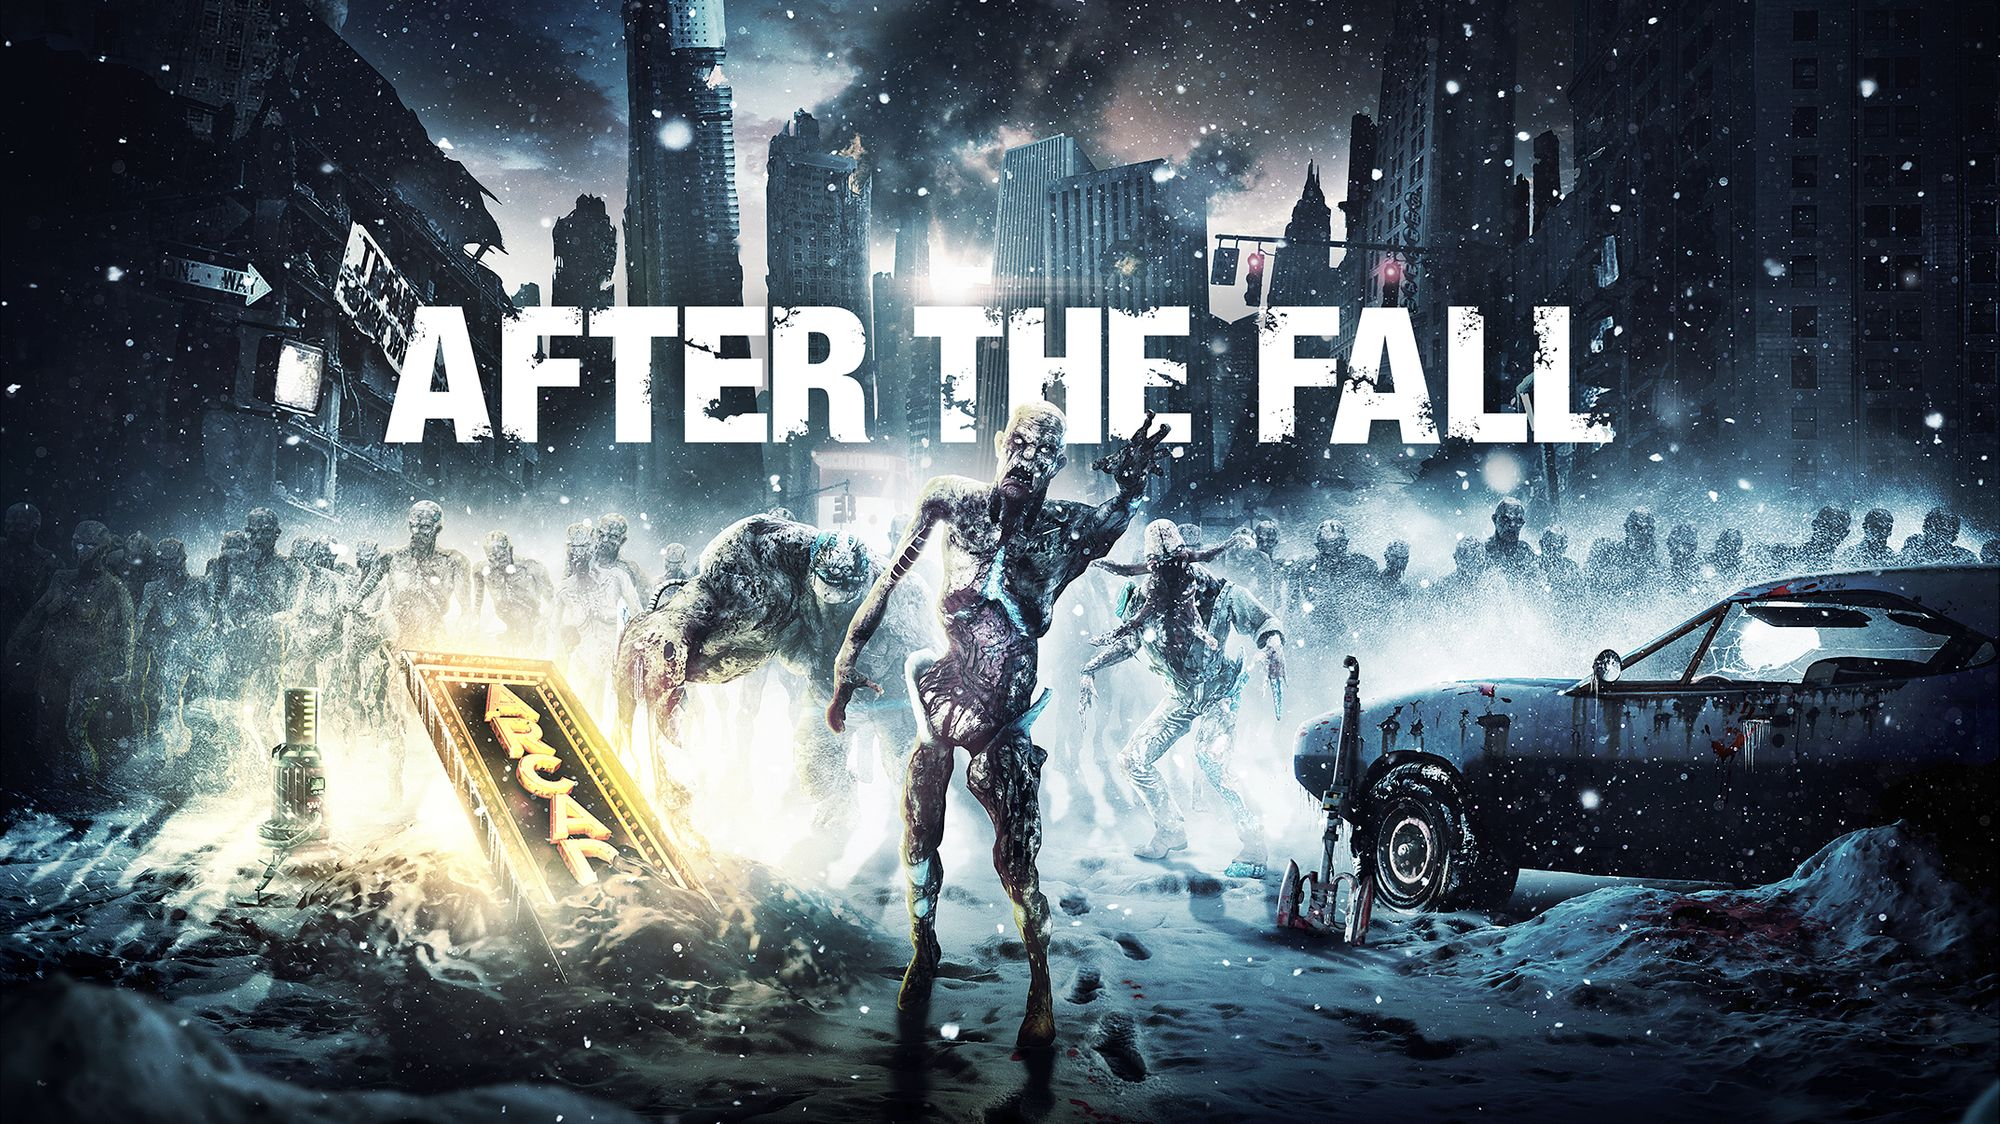 Another VR title delayed: After The Fall Delayed Until 2021